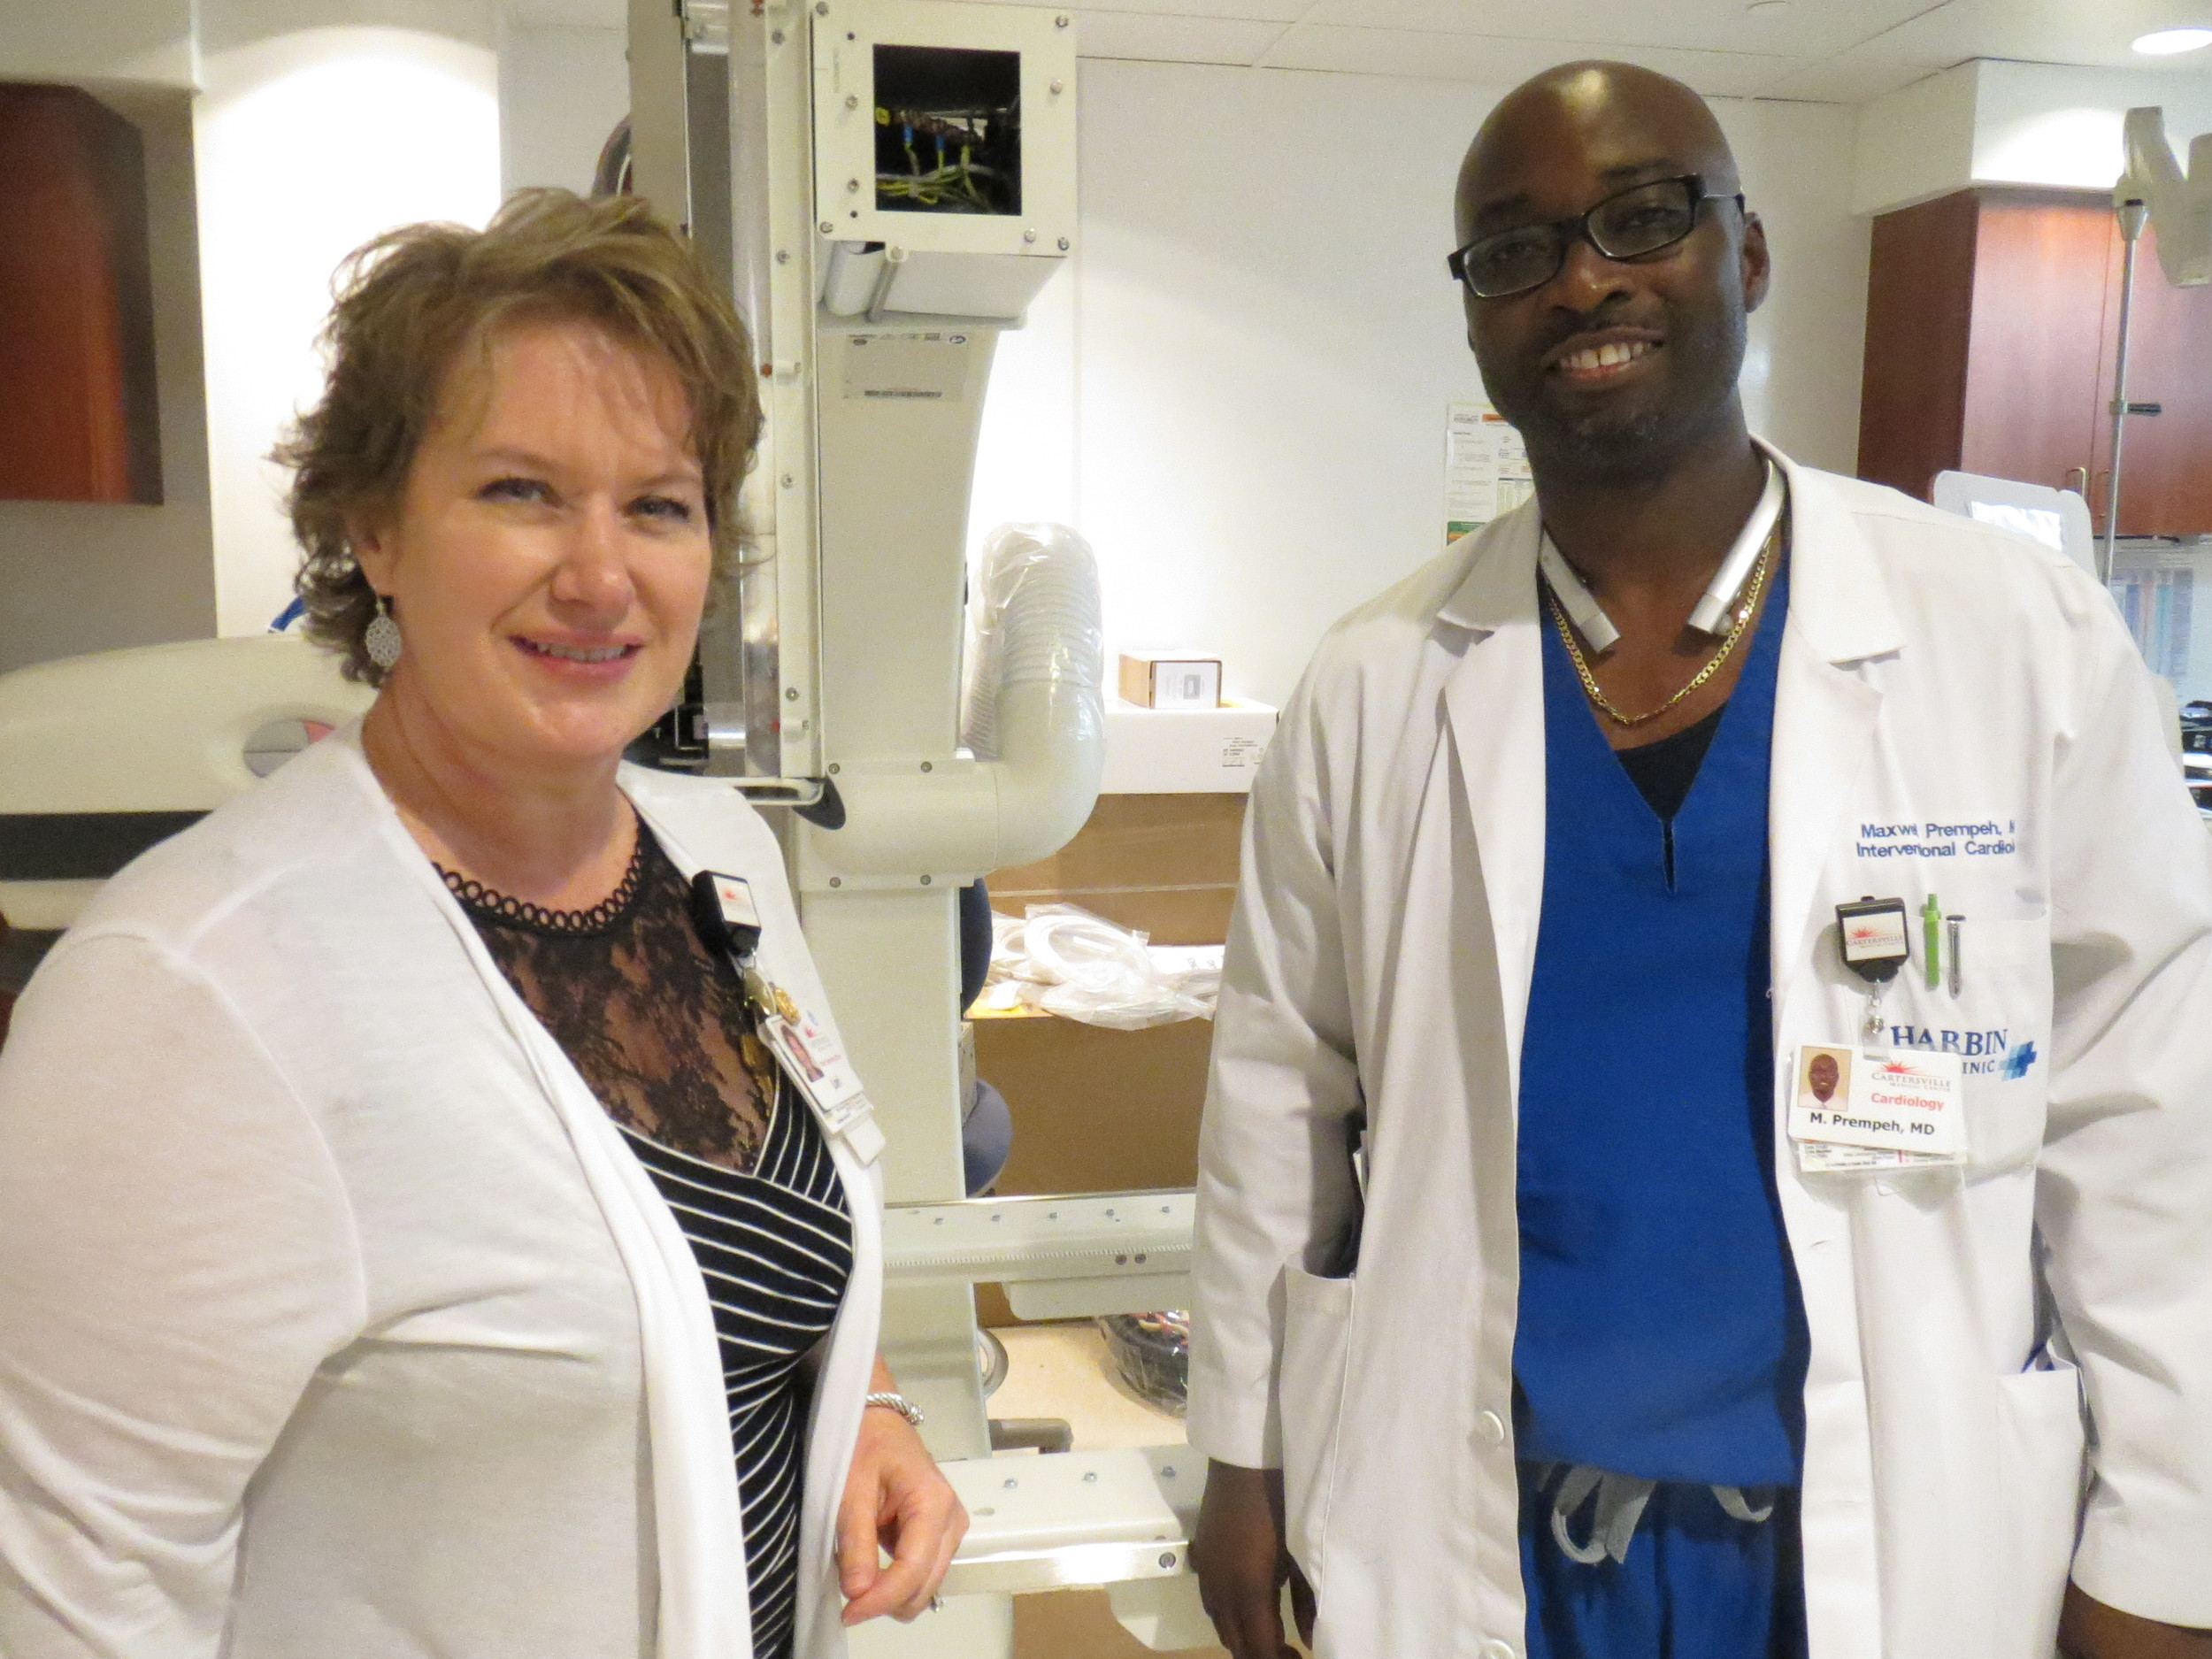 Cartersville Medical Center COO Lori Rakes and Medical Director of Cardiovascular Services Dr. Maxwell Prempeh say plans for cardiology services expansion will have a big impact on the local hospital.